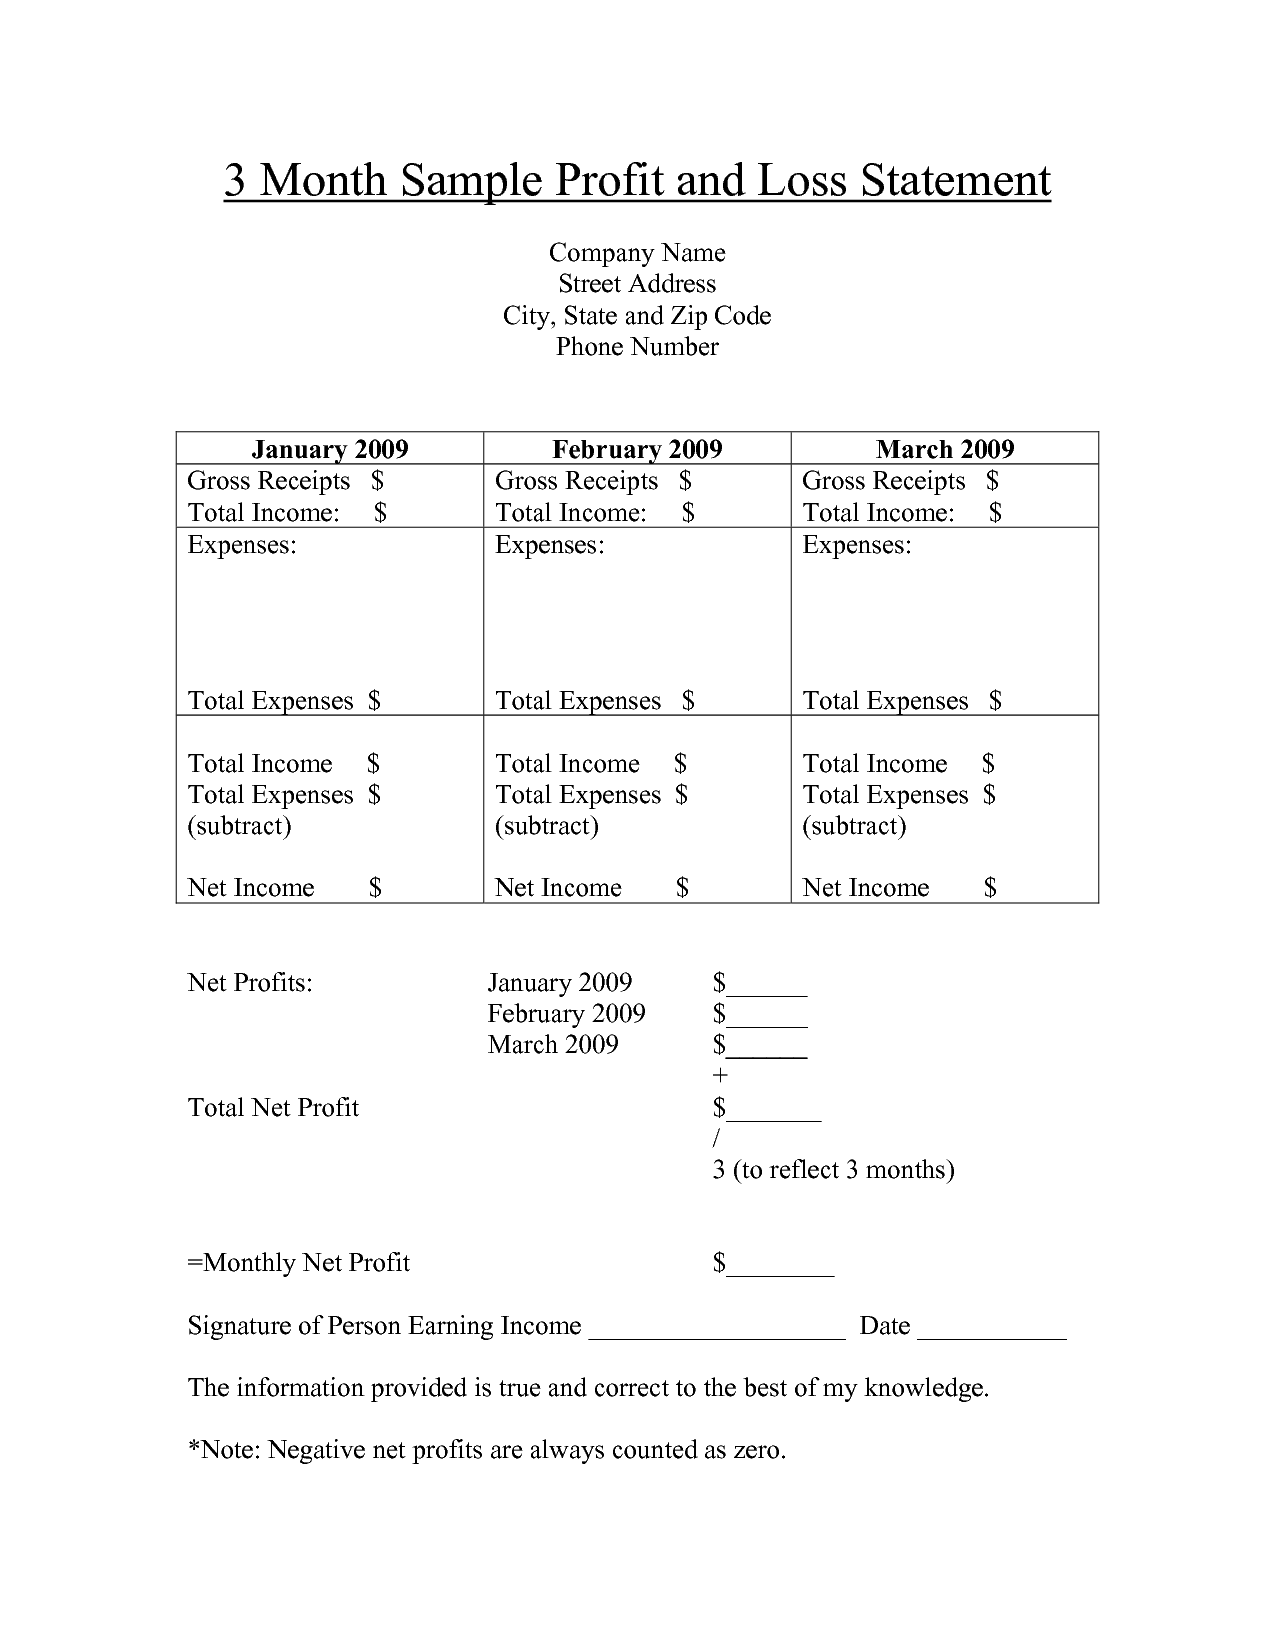 Free Printable Profit And Loss Statement Form For Home Care   Bing Images  Profit Loss Form